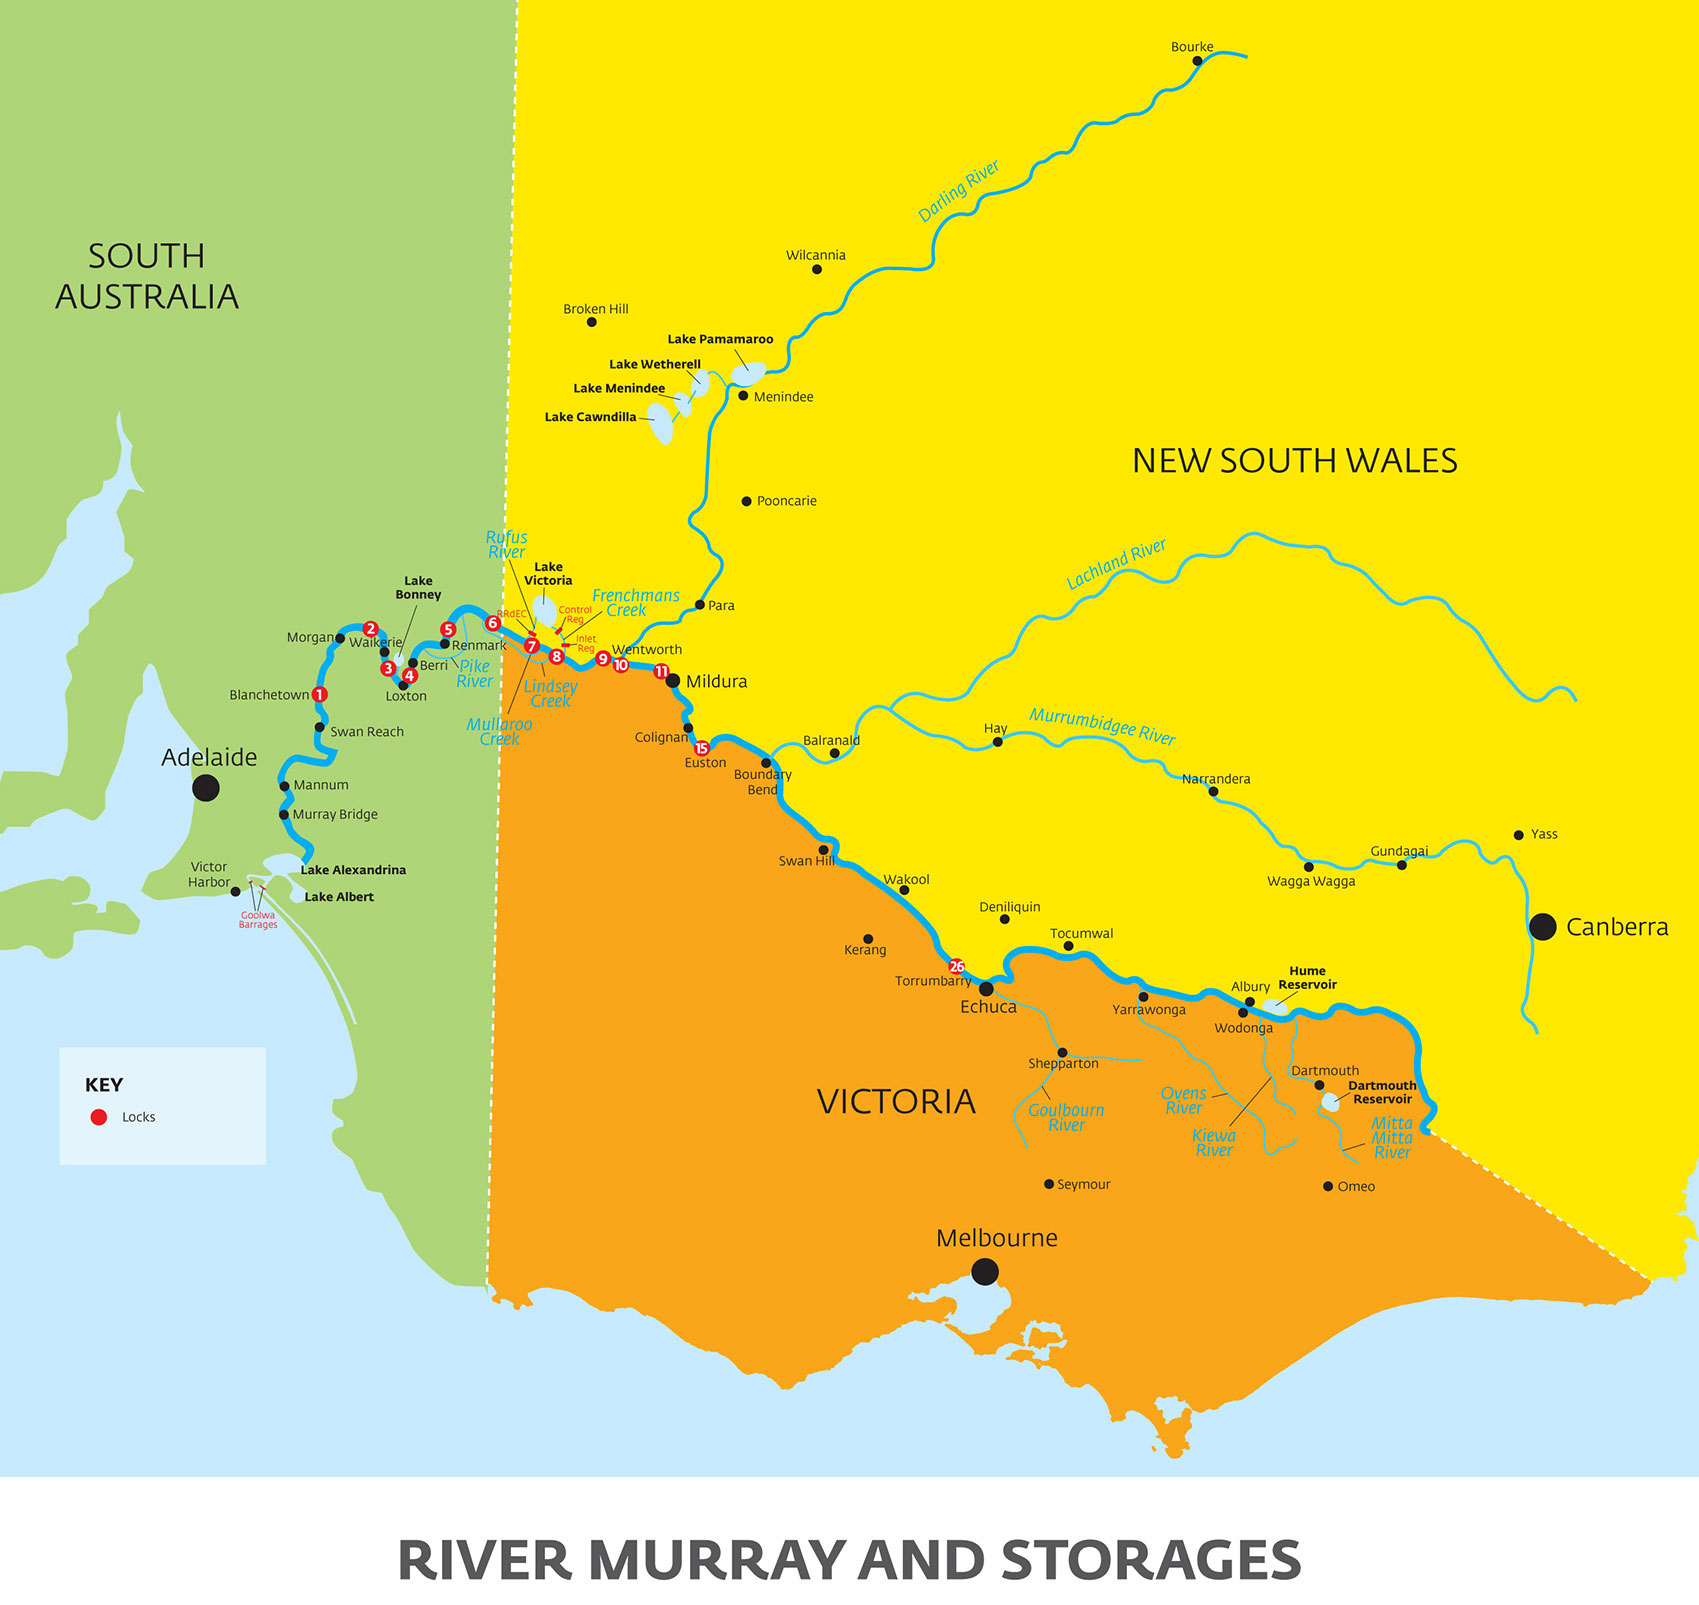 The River Murray and Storage system, including numbered locks.